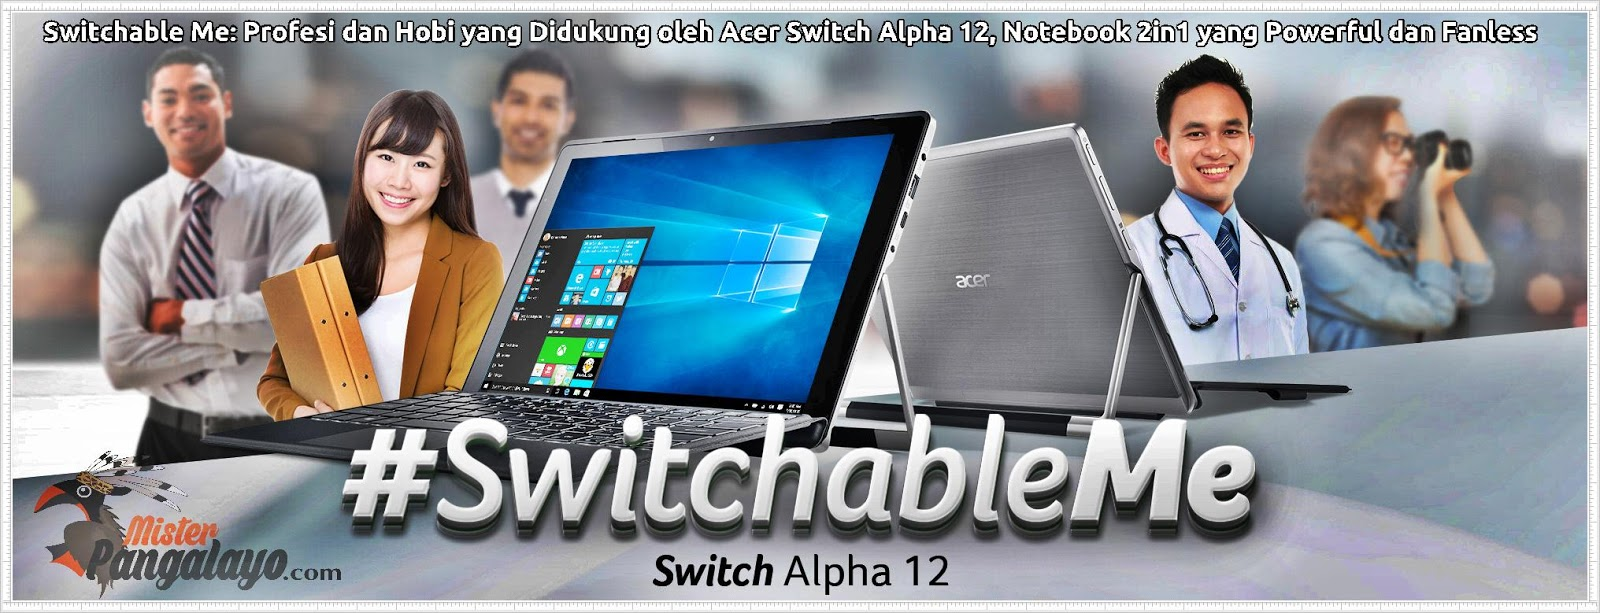 Switchable Me: Profesi dan Hobi yang Didukung oleh Acer Switch Alpha 12, Notebook 2in1 yang Powerful dan Fanless